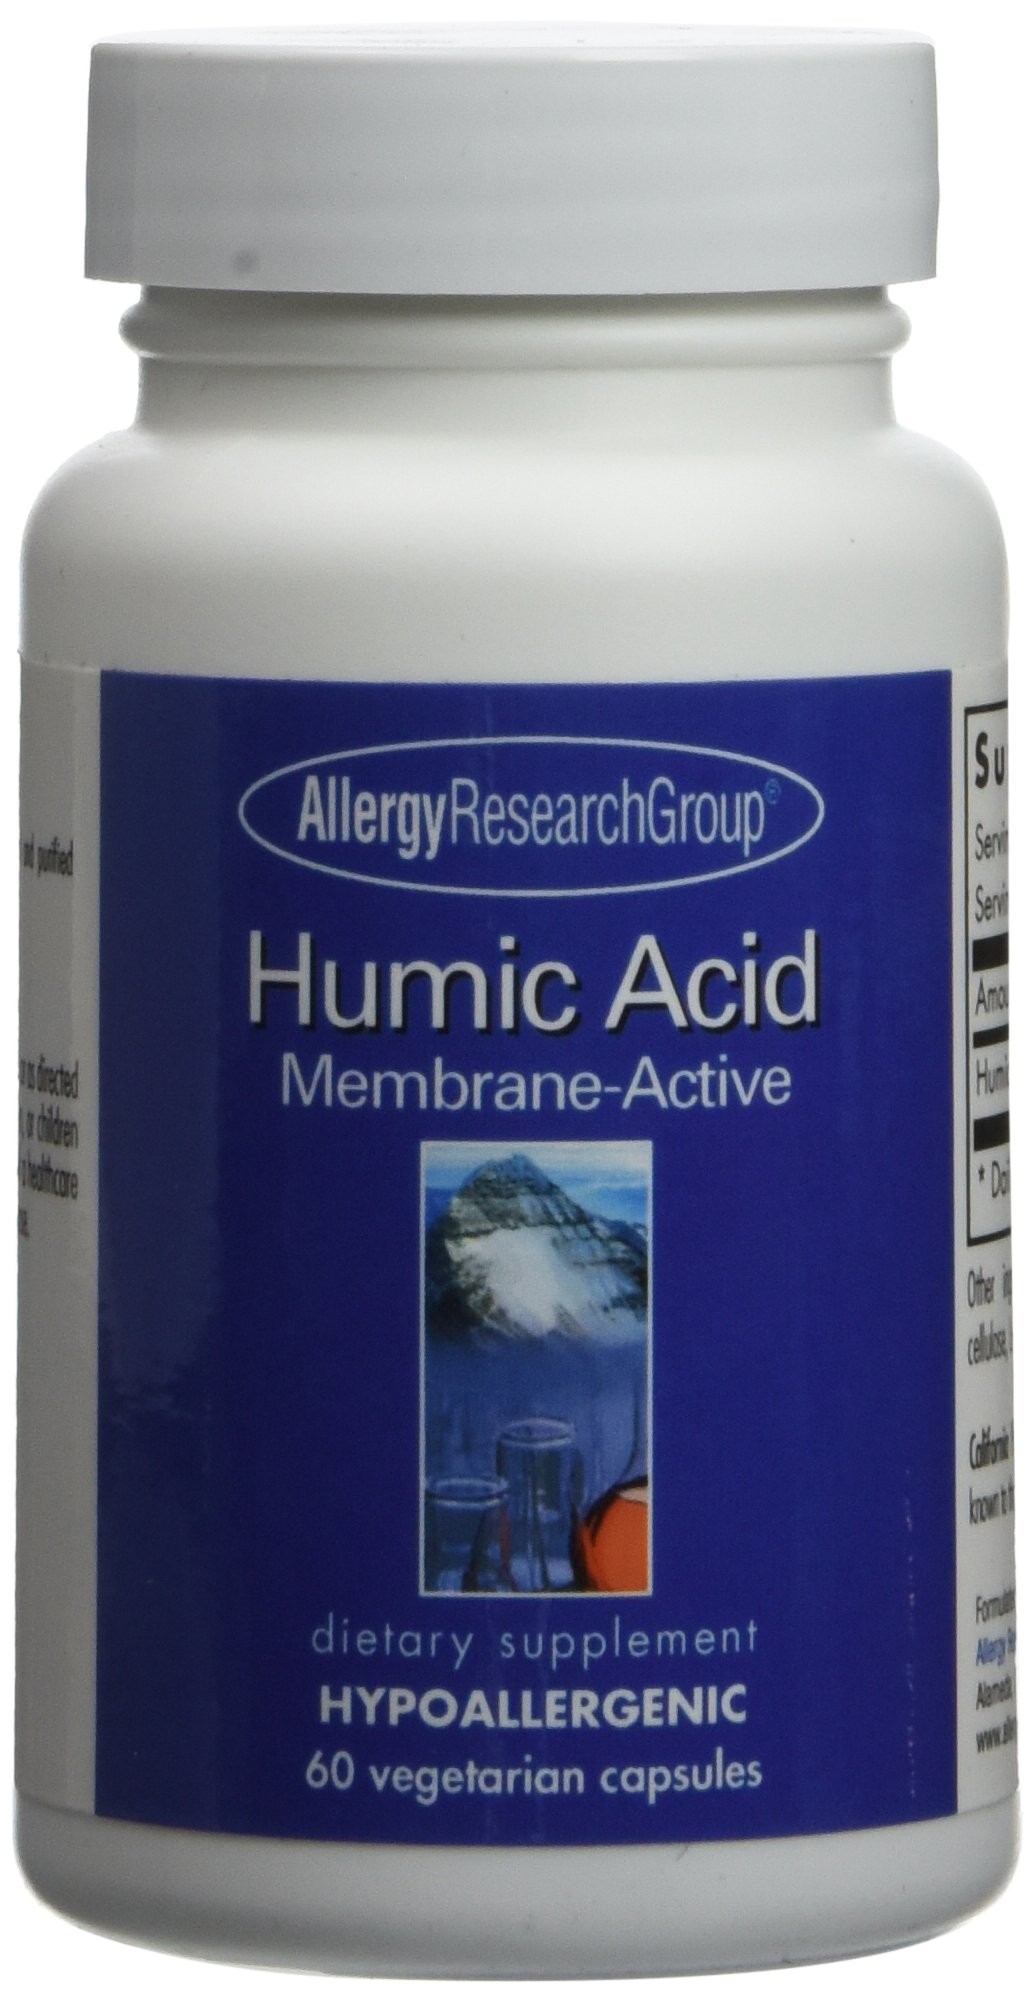 Allergy Research Group Humic Acid Membrane-Active 750 mg 60 Veg Caps